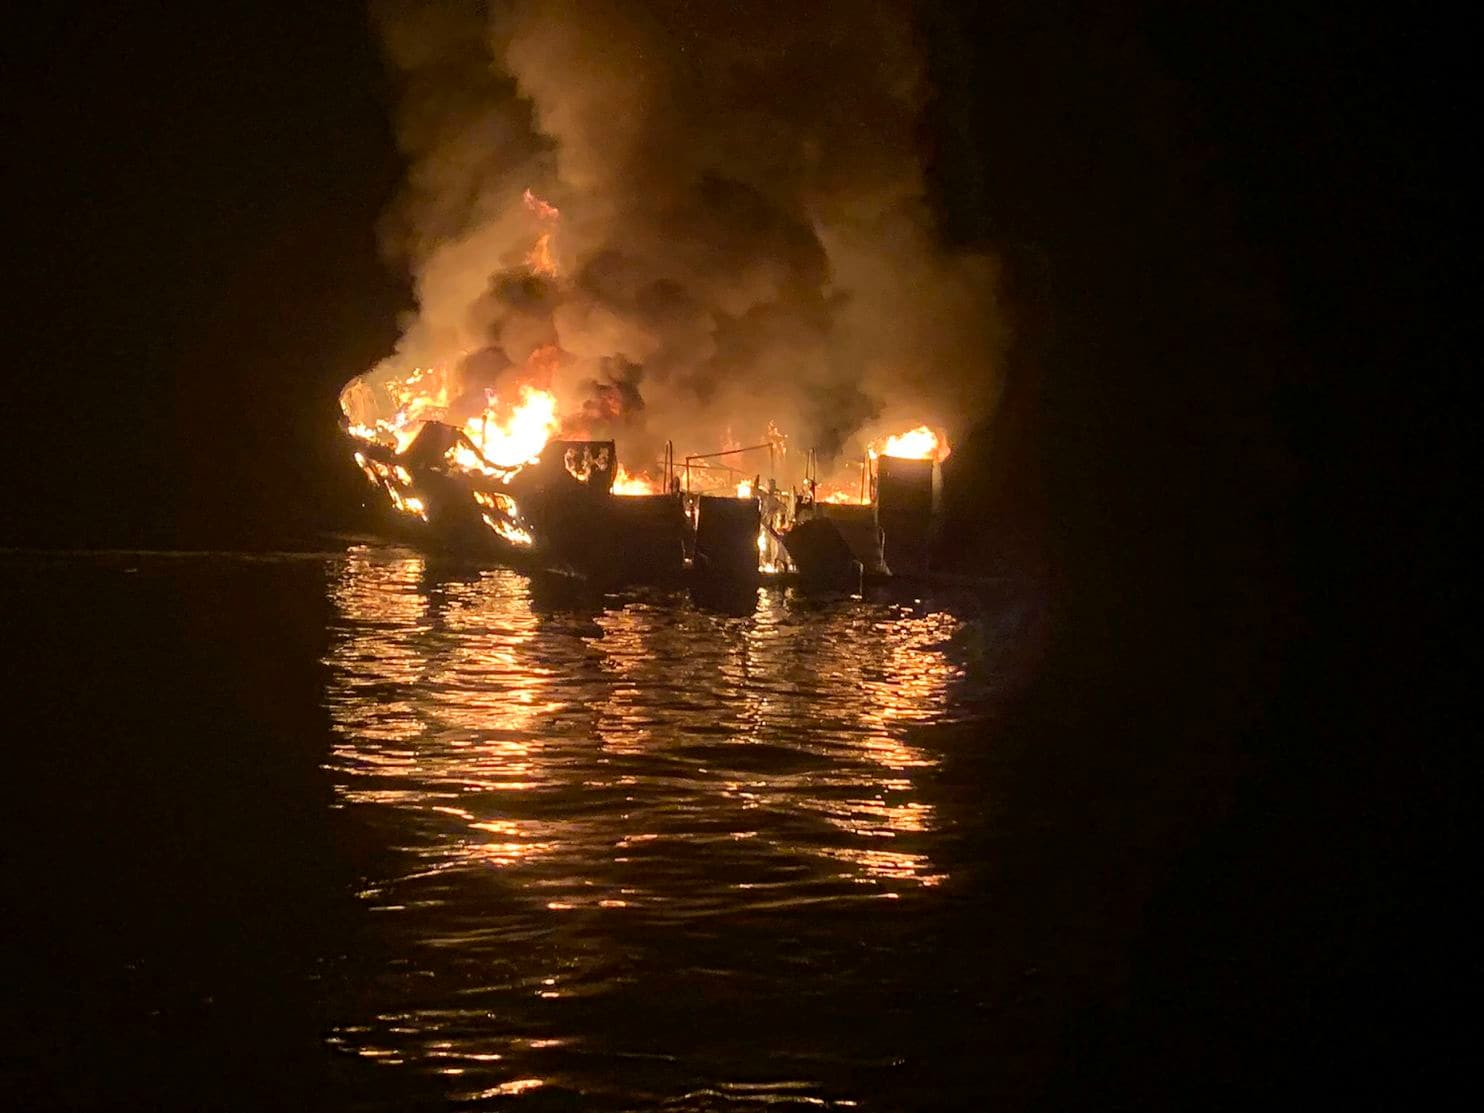 The fire of a diving boat off the coast of Santa Cruz Island killed 34 out of 39 people aboard.